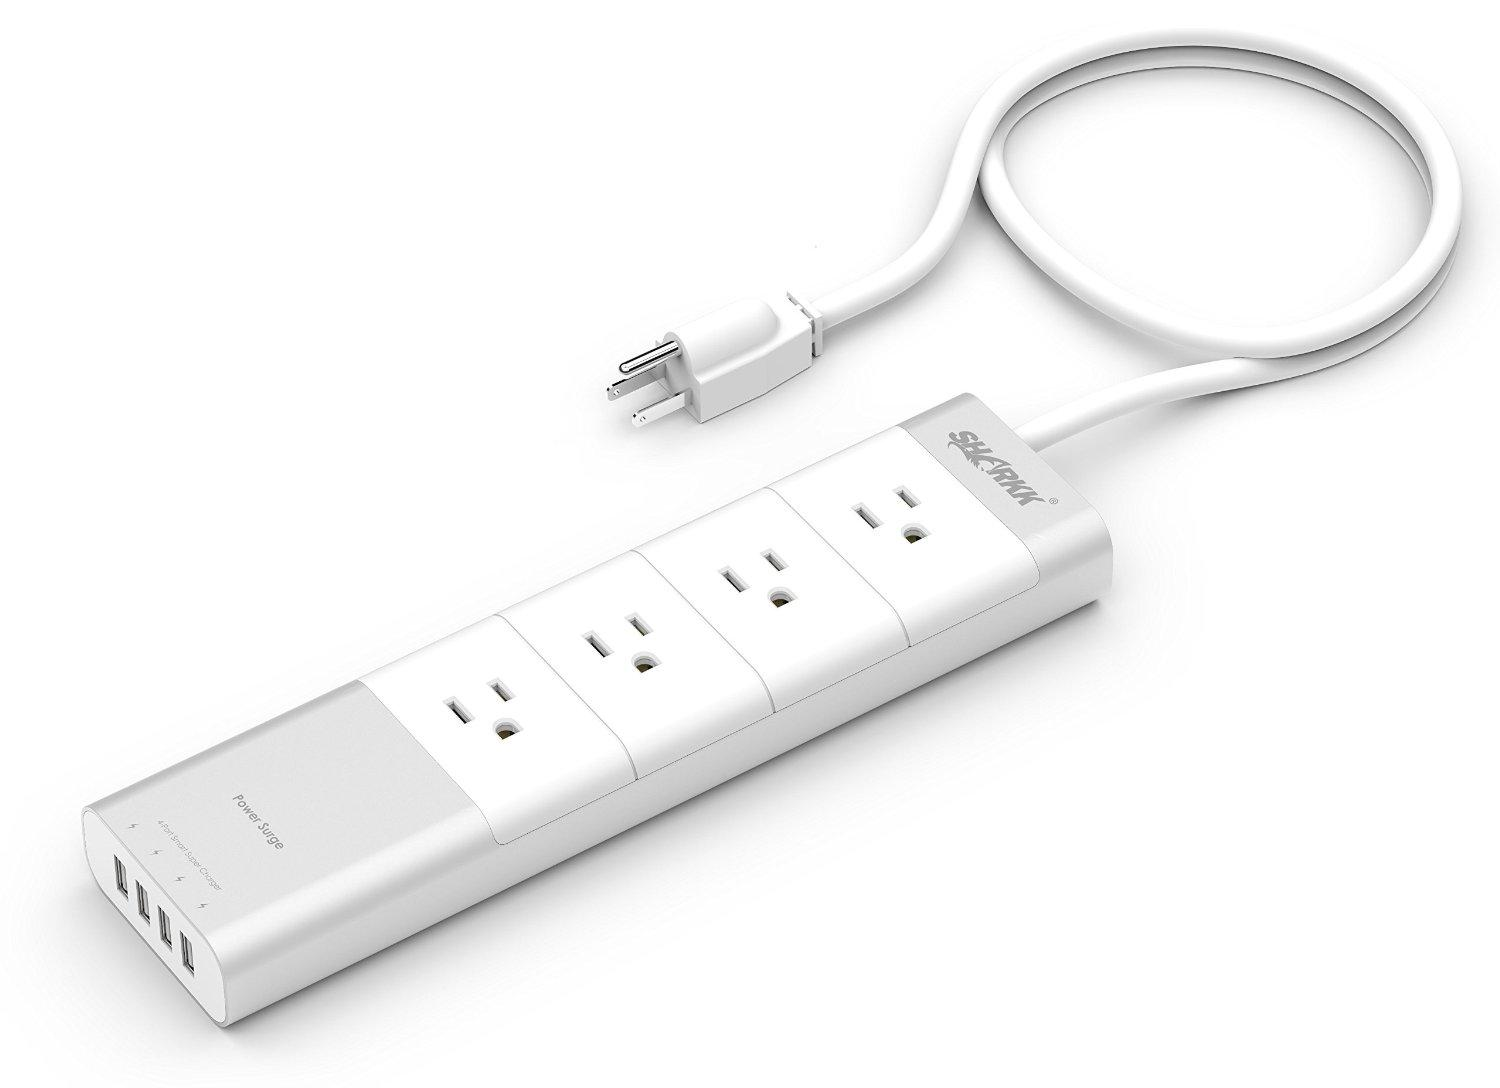 SHARKK® 4 Outlet Power Strip Home Office FireProof Surge Protector with 4 USB Smart Charge Ports